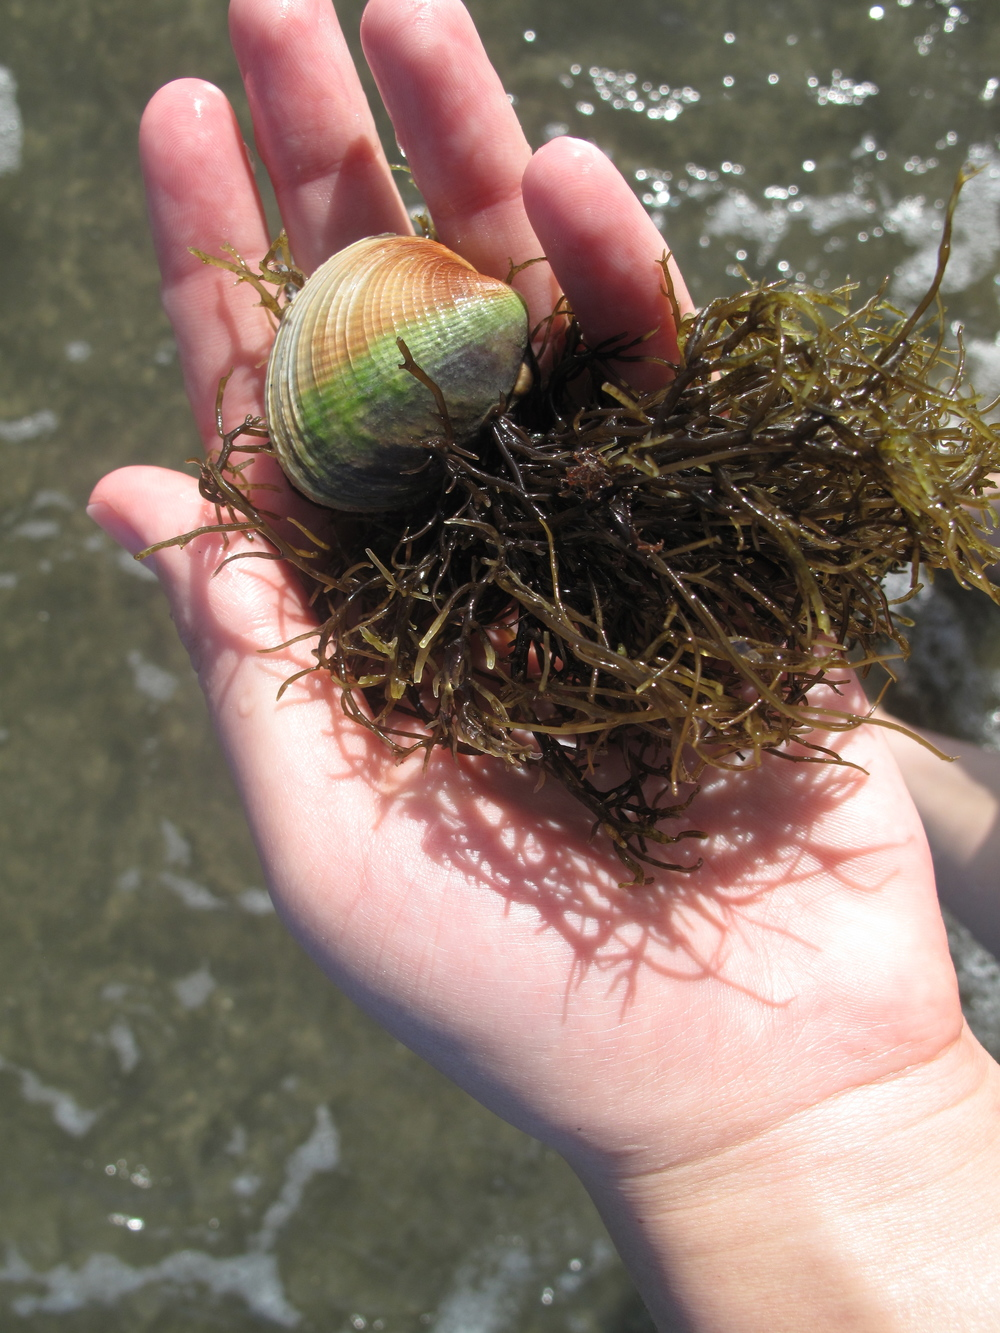 rainbow clam shell with seaweed